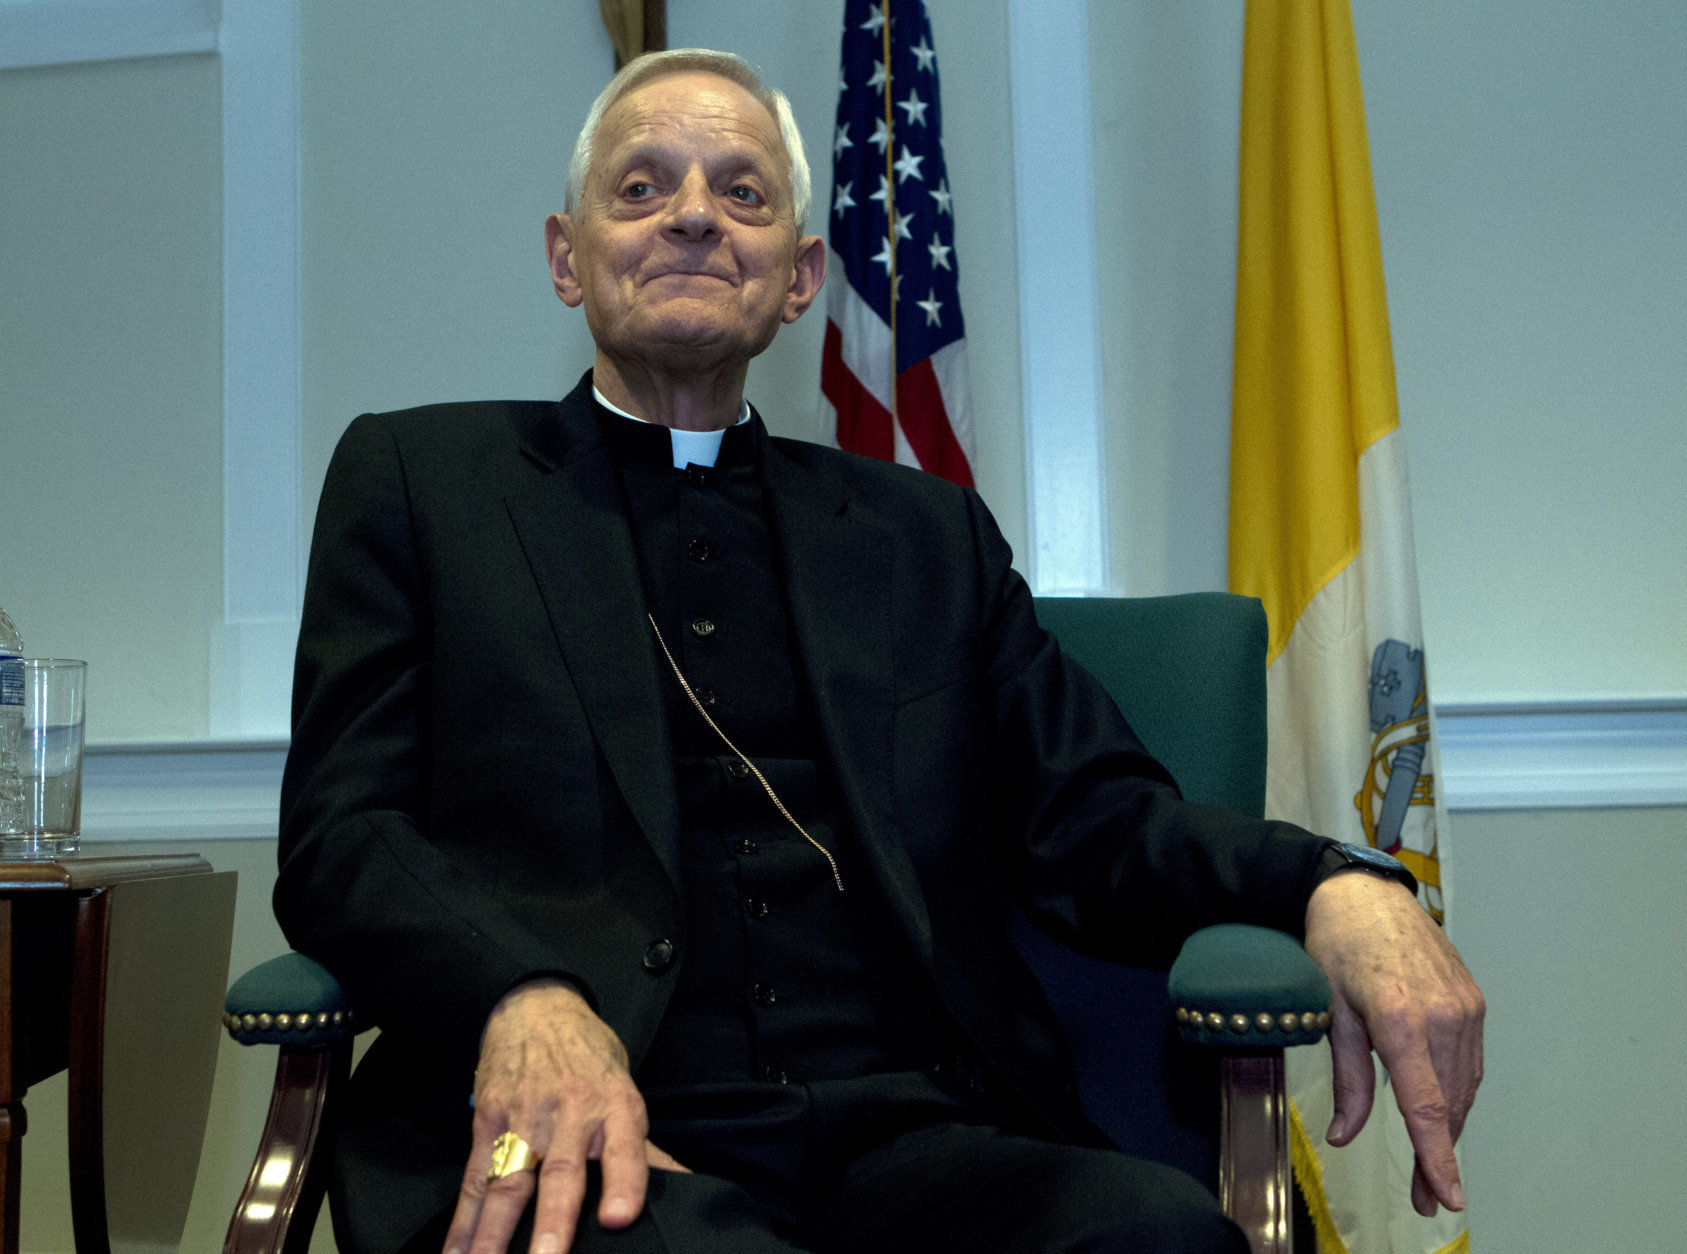 Cardinal Donald Wuerl listens as Archbishop designated by Pope Francis to the Archdiocese of Washington, Archbishop Wilton D. Gregory, speaks during a news conference at Washington Archdiocesan Pastoral Center in Hyattsville, Md., Thursday, April 4, 2019. Archbishop-designate Gregory will succeed Cardinal Donald Wuerl. (AP Photo/Jose Luis Magana)